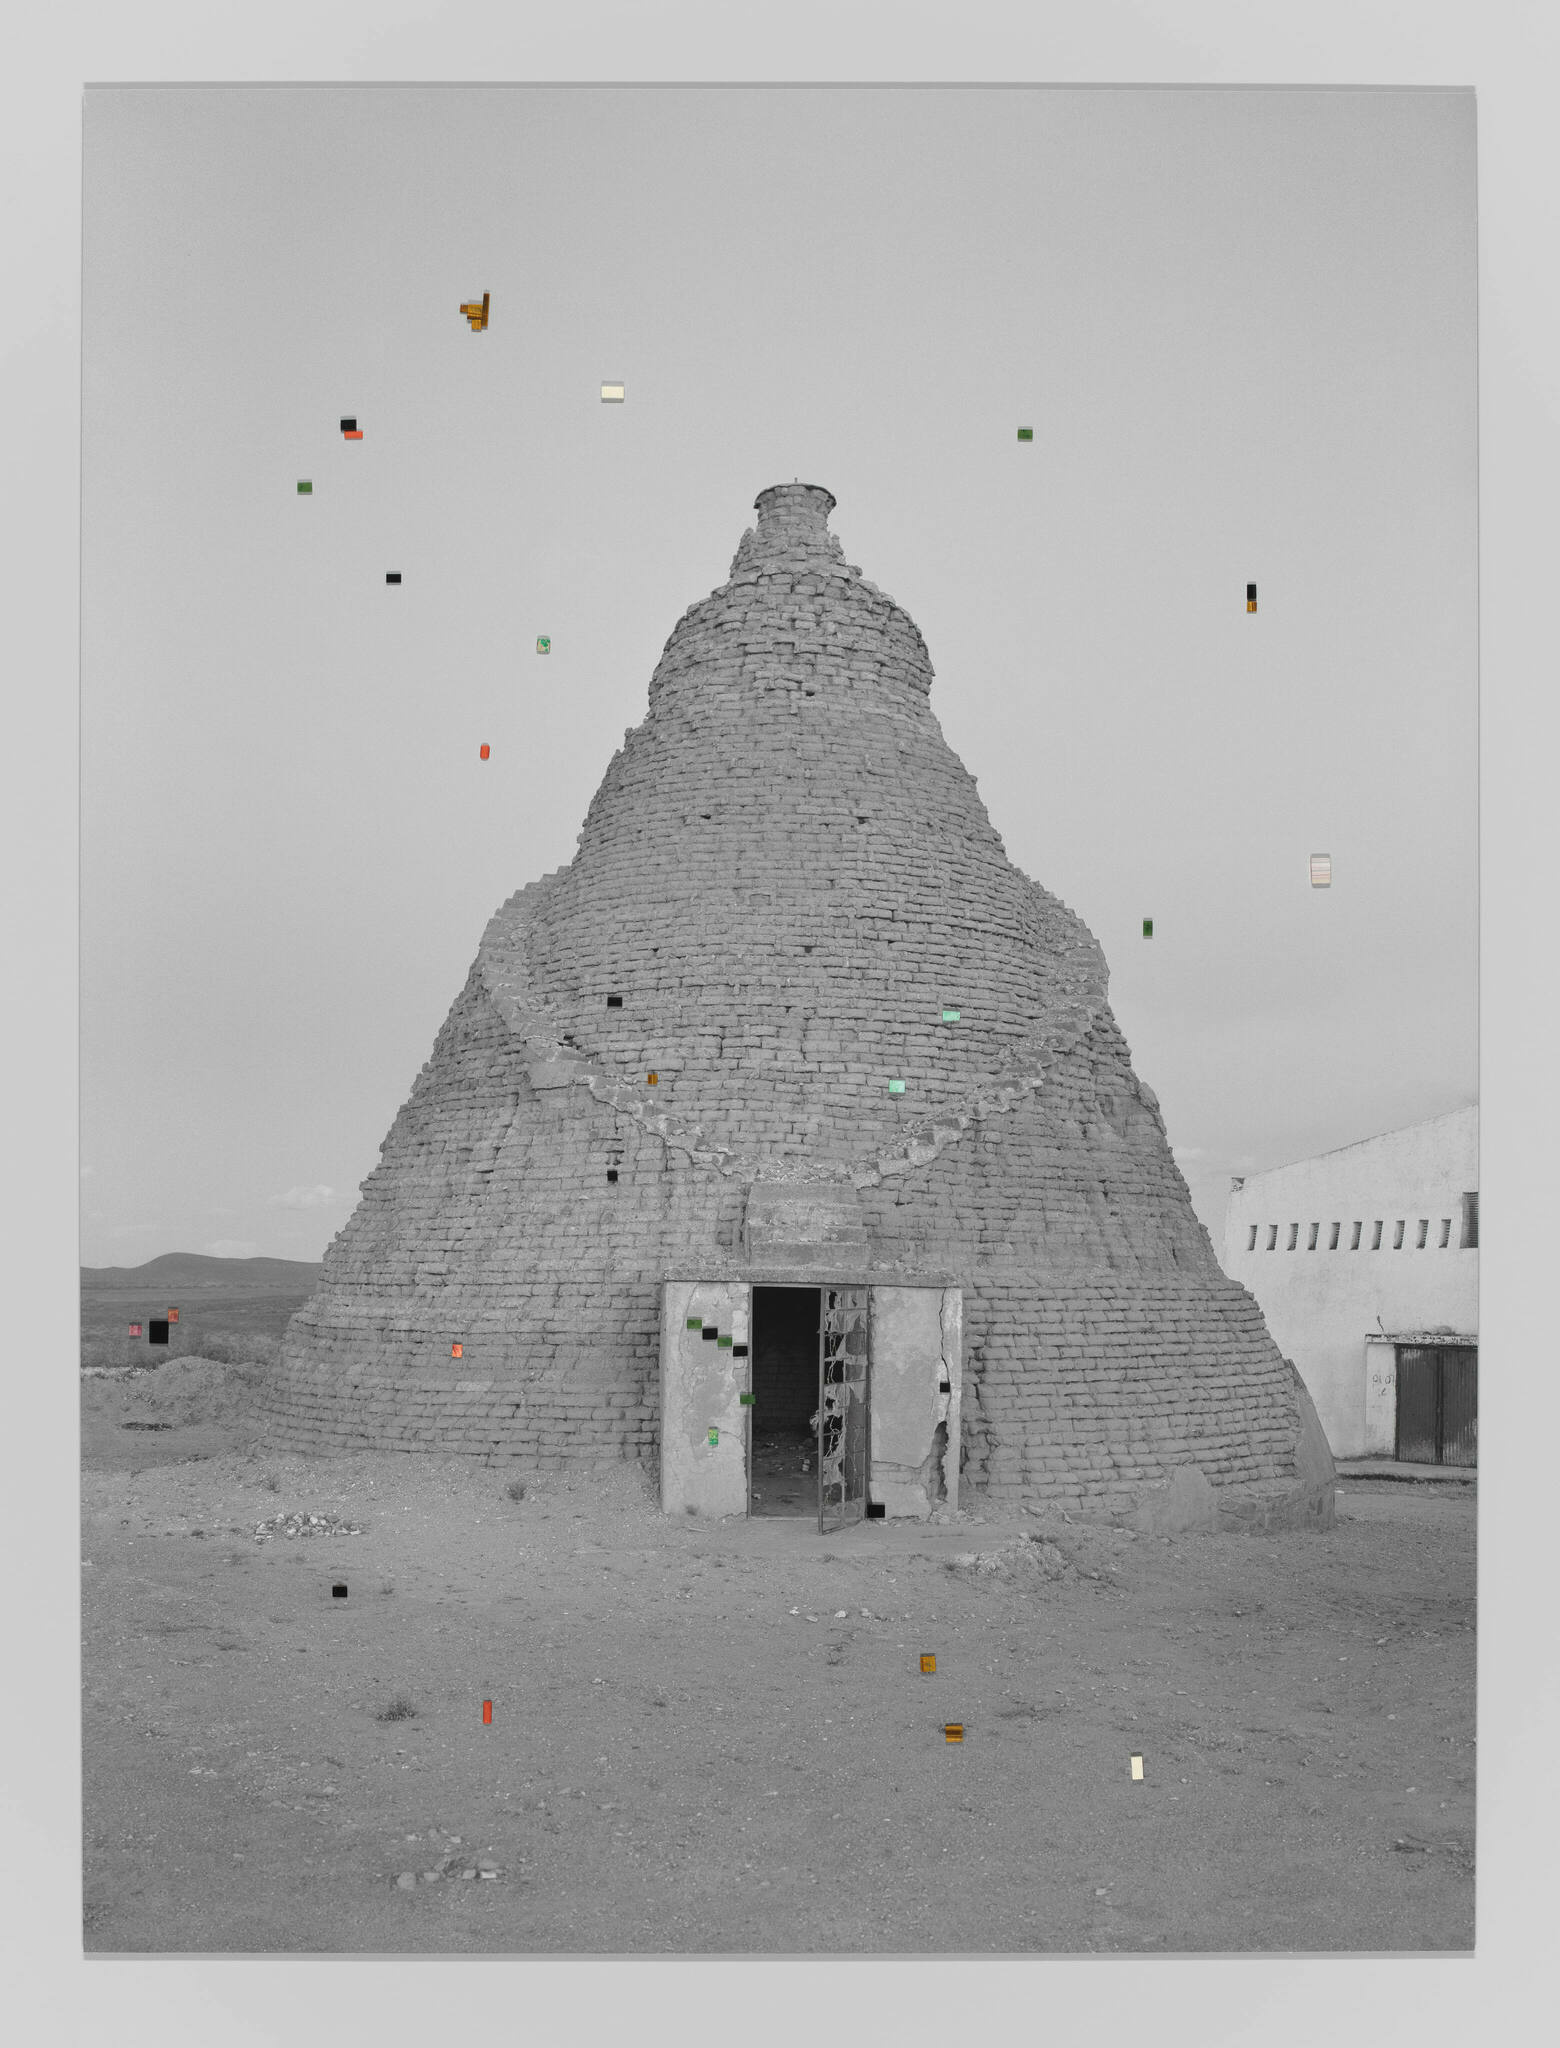 A black-and-white photograph of a large, conical grain silo is adorned by small, colorful precious gems